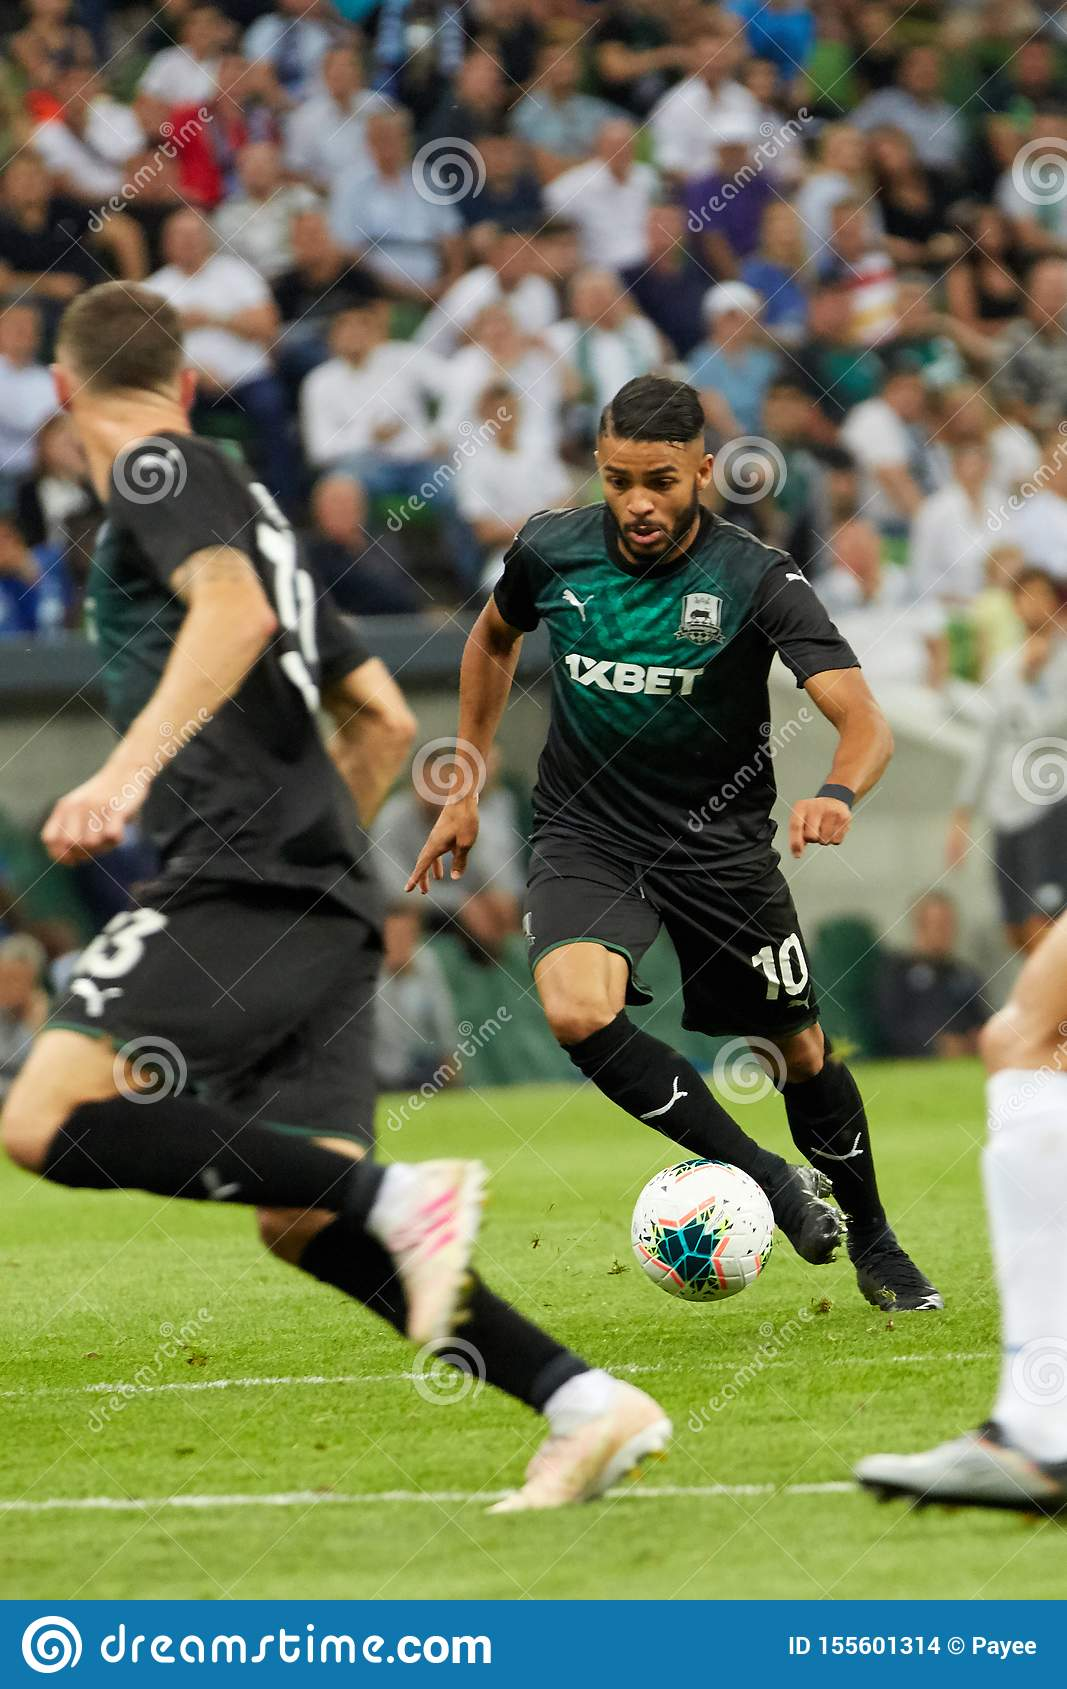 Wanderson Of Fc Krasnodar In Action Editorial Stock Image Image Of Game Grass 155601314